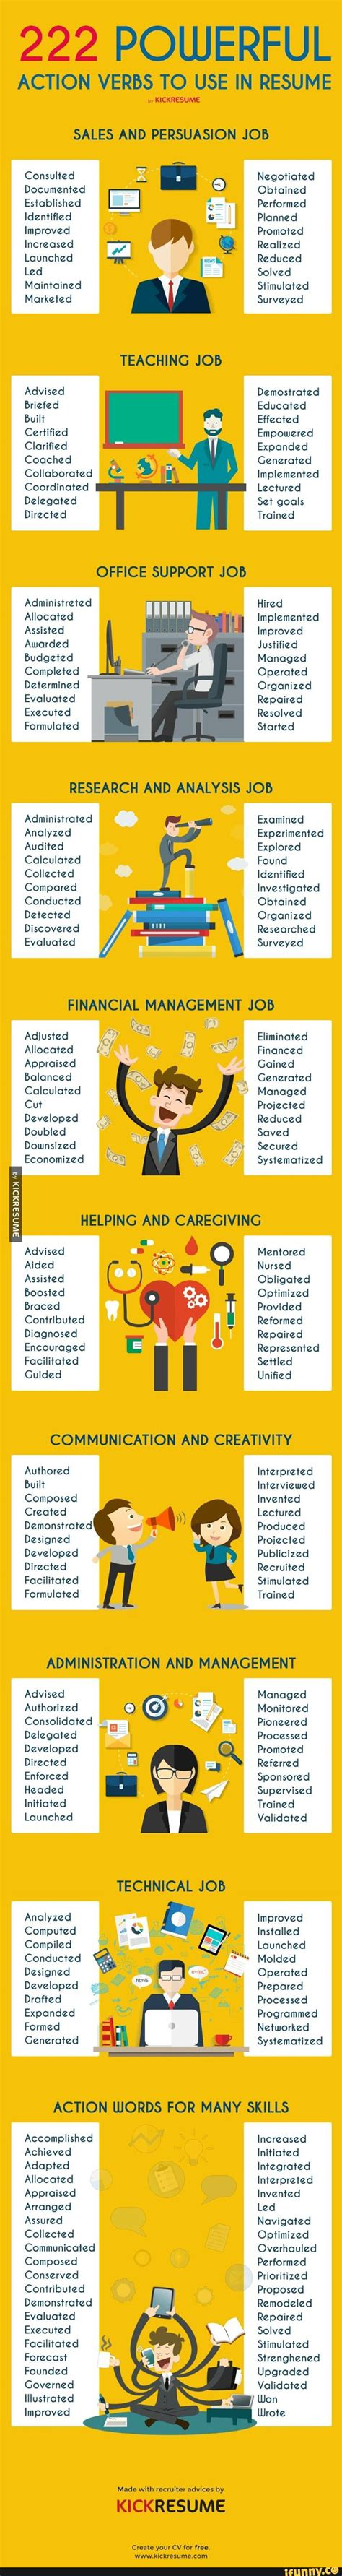 100 resume action verbs for promoting your skills use these words